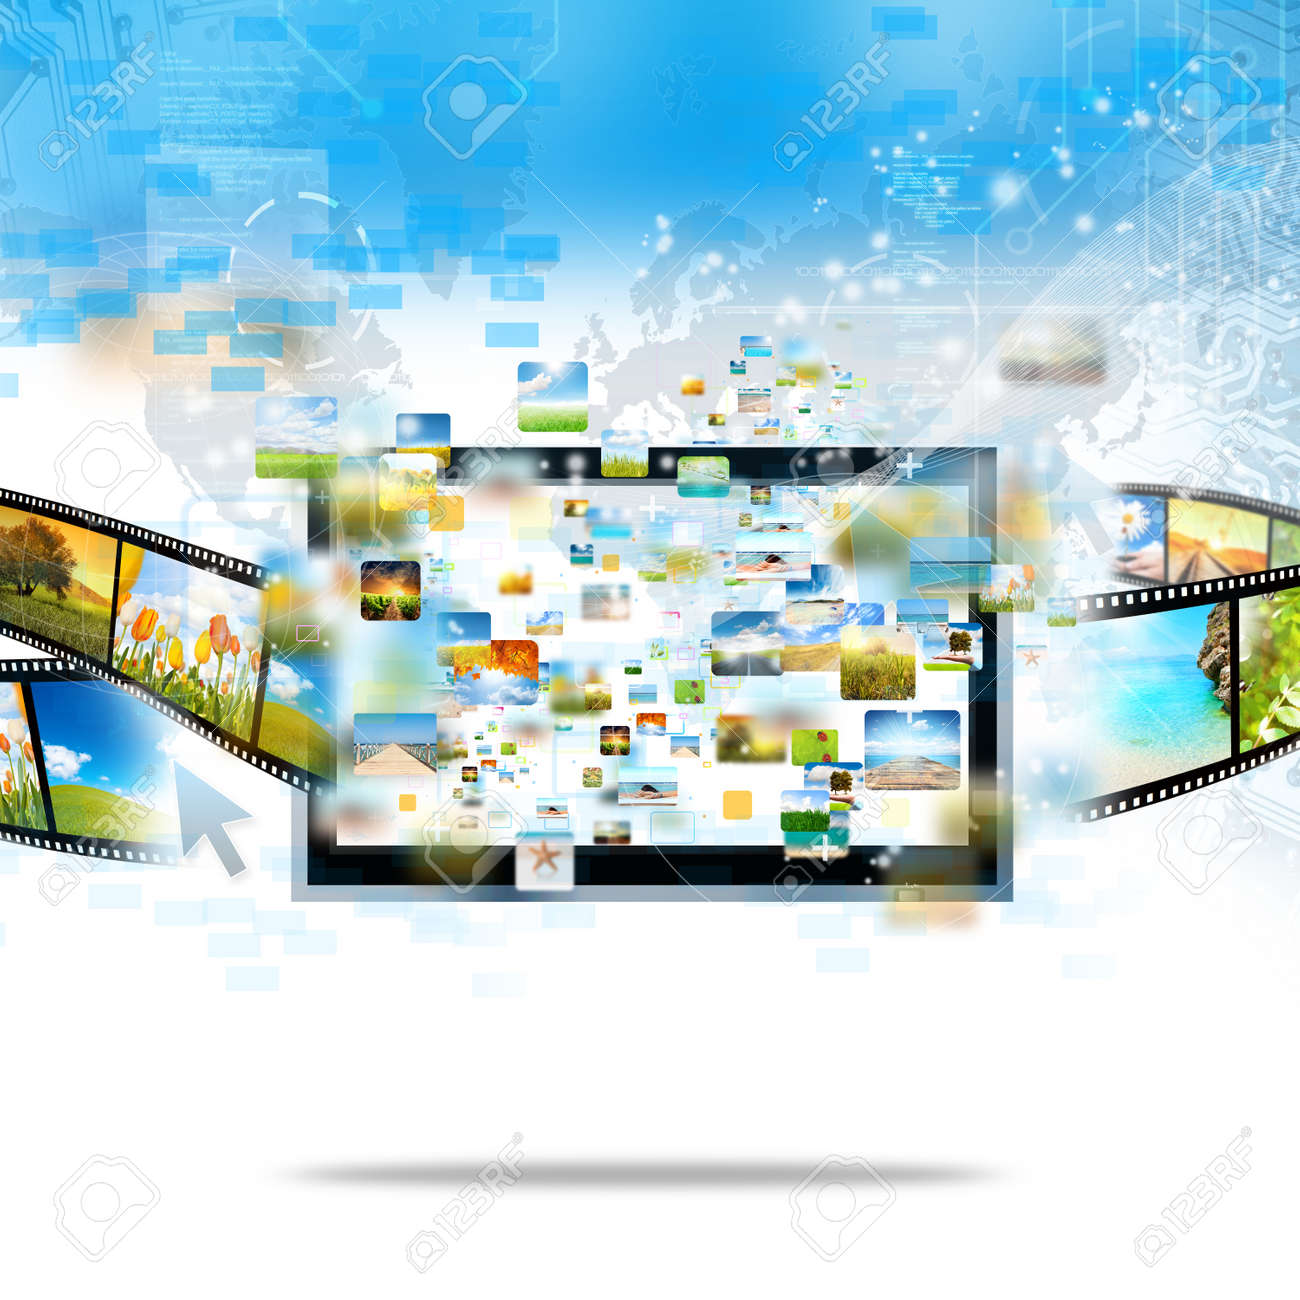 Modern television streaming image and movie Stock Photo - 10535486